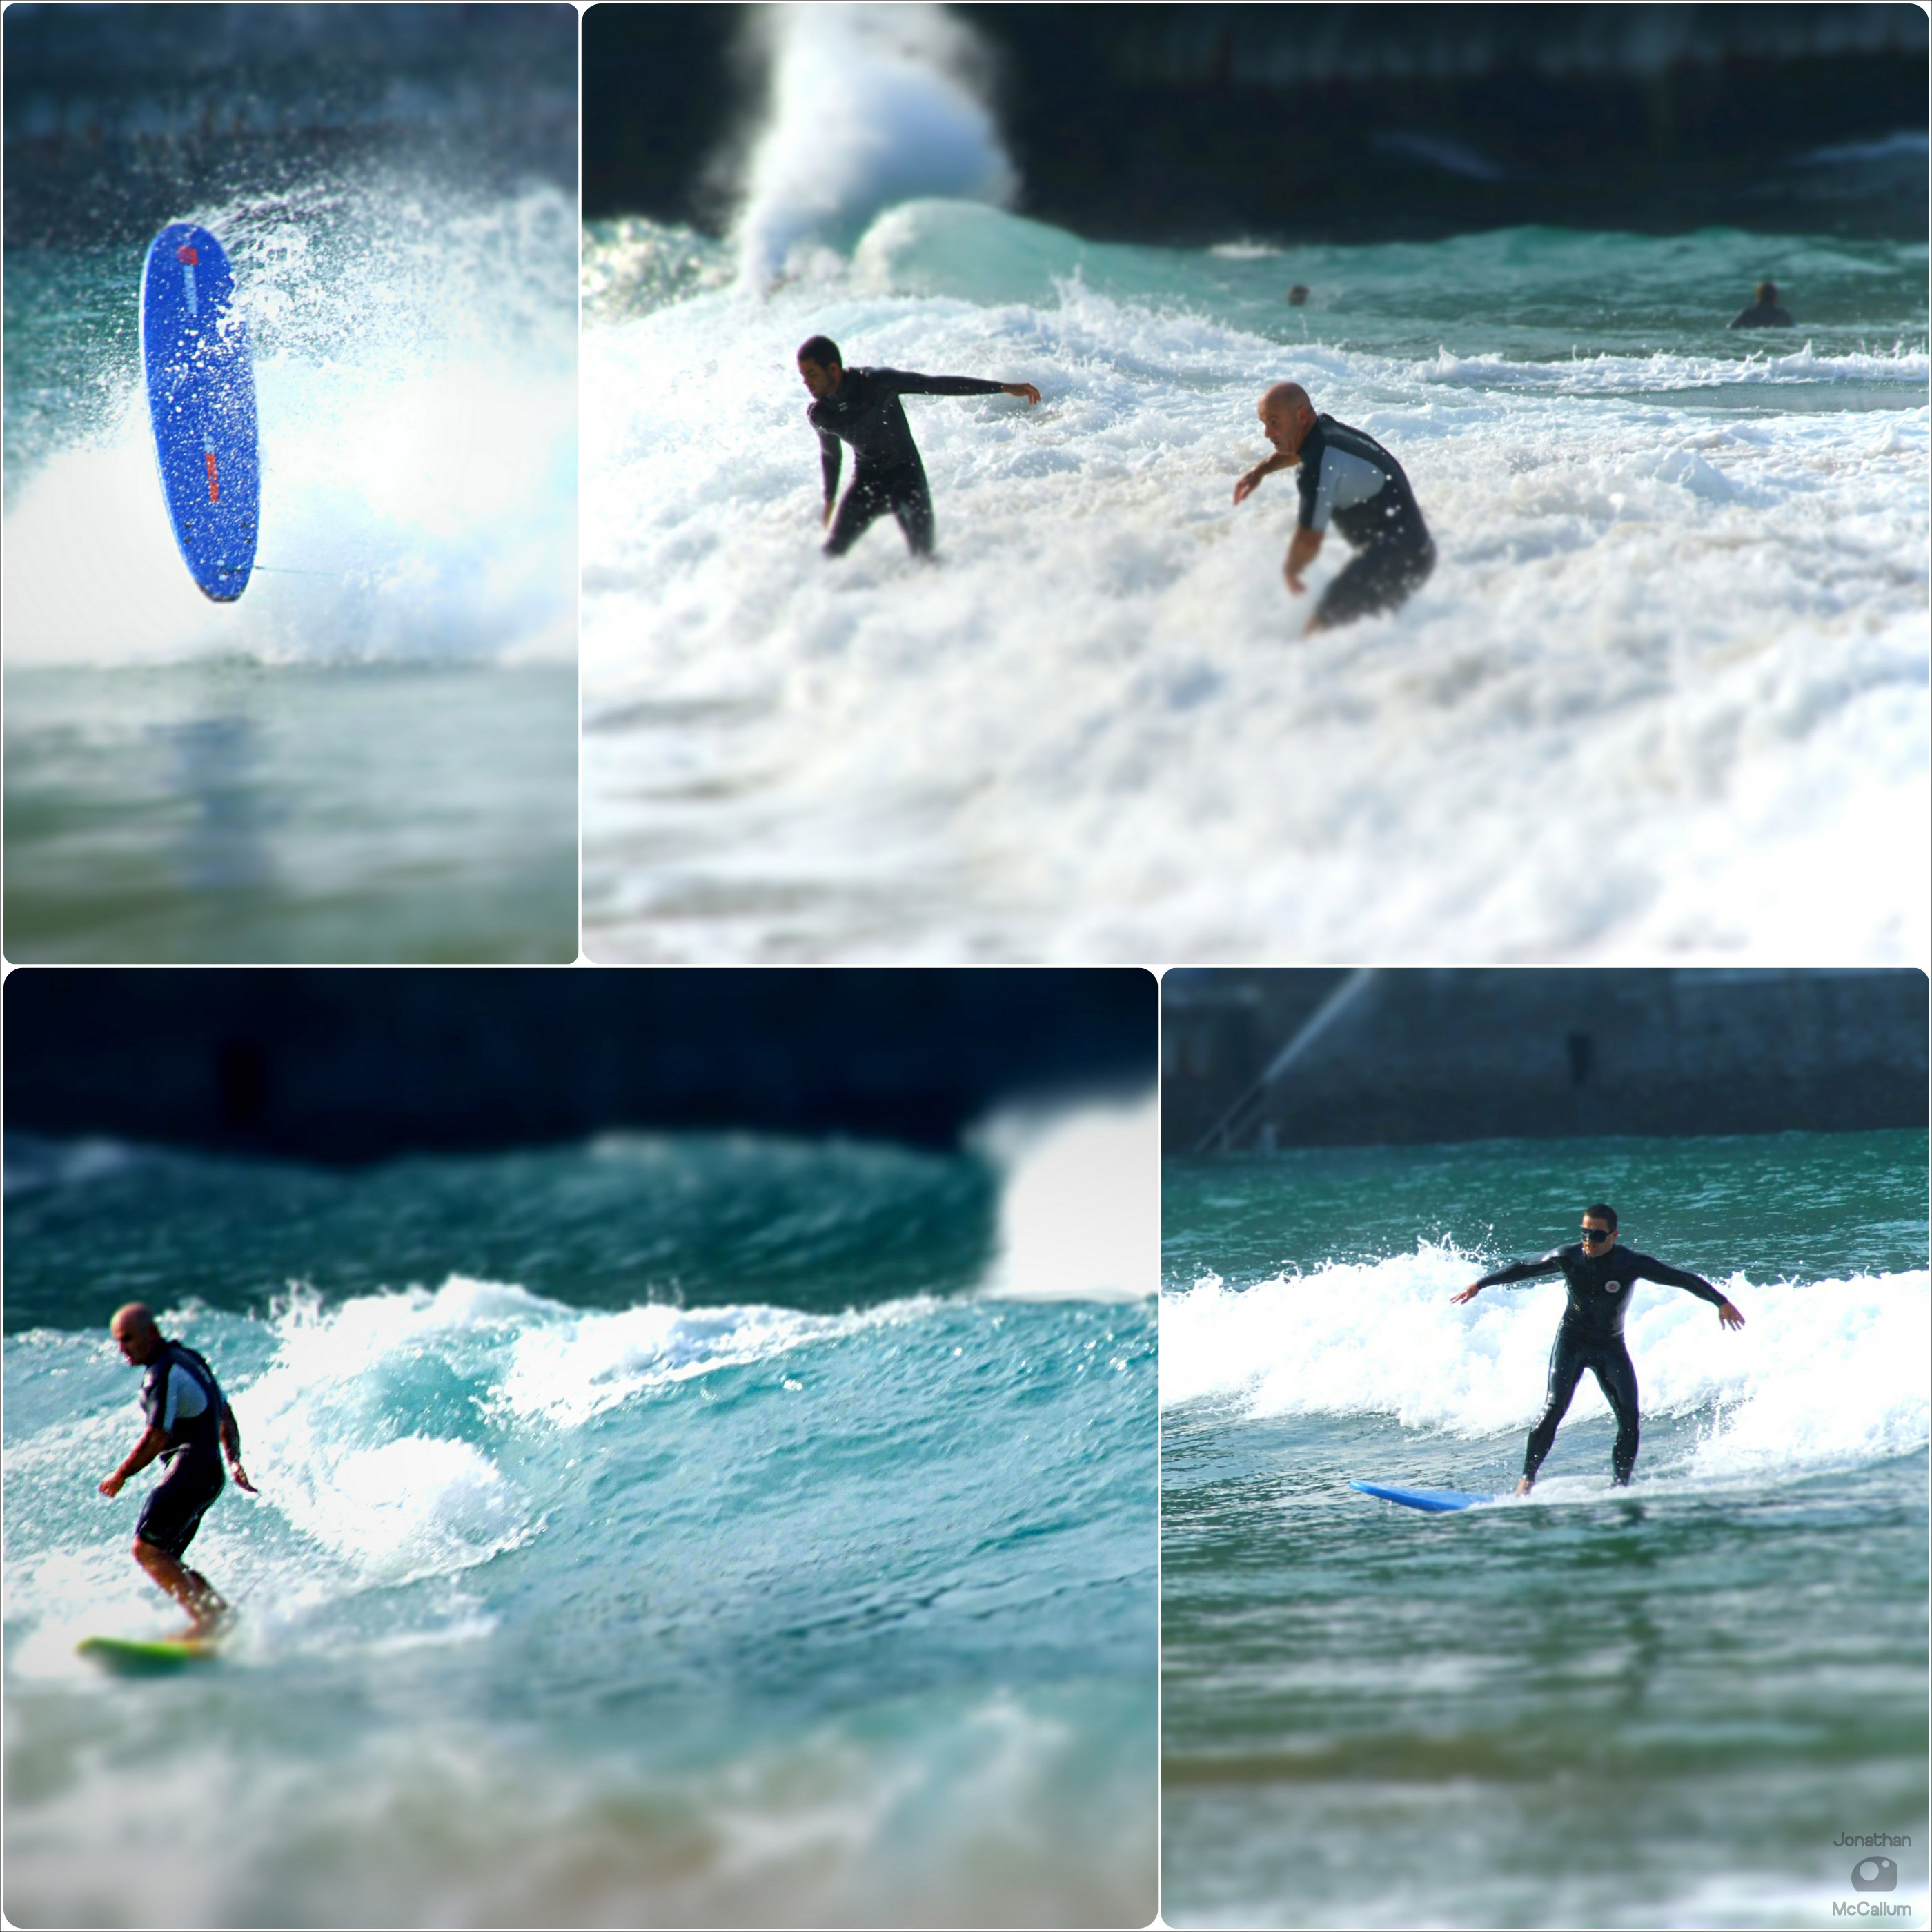 Surfing with Aitor, Derek, Axi & Friends